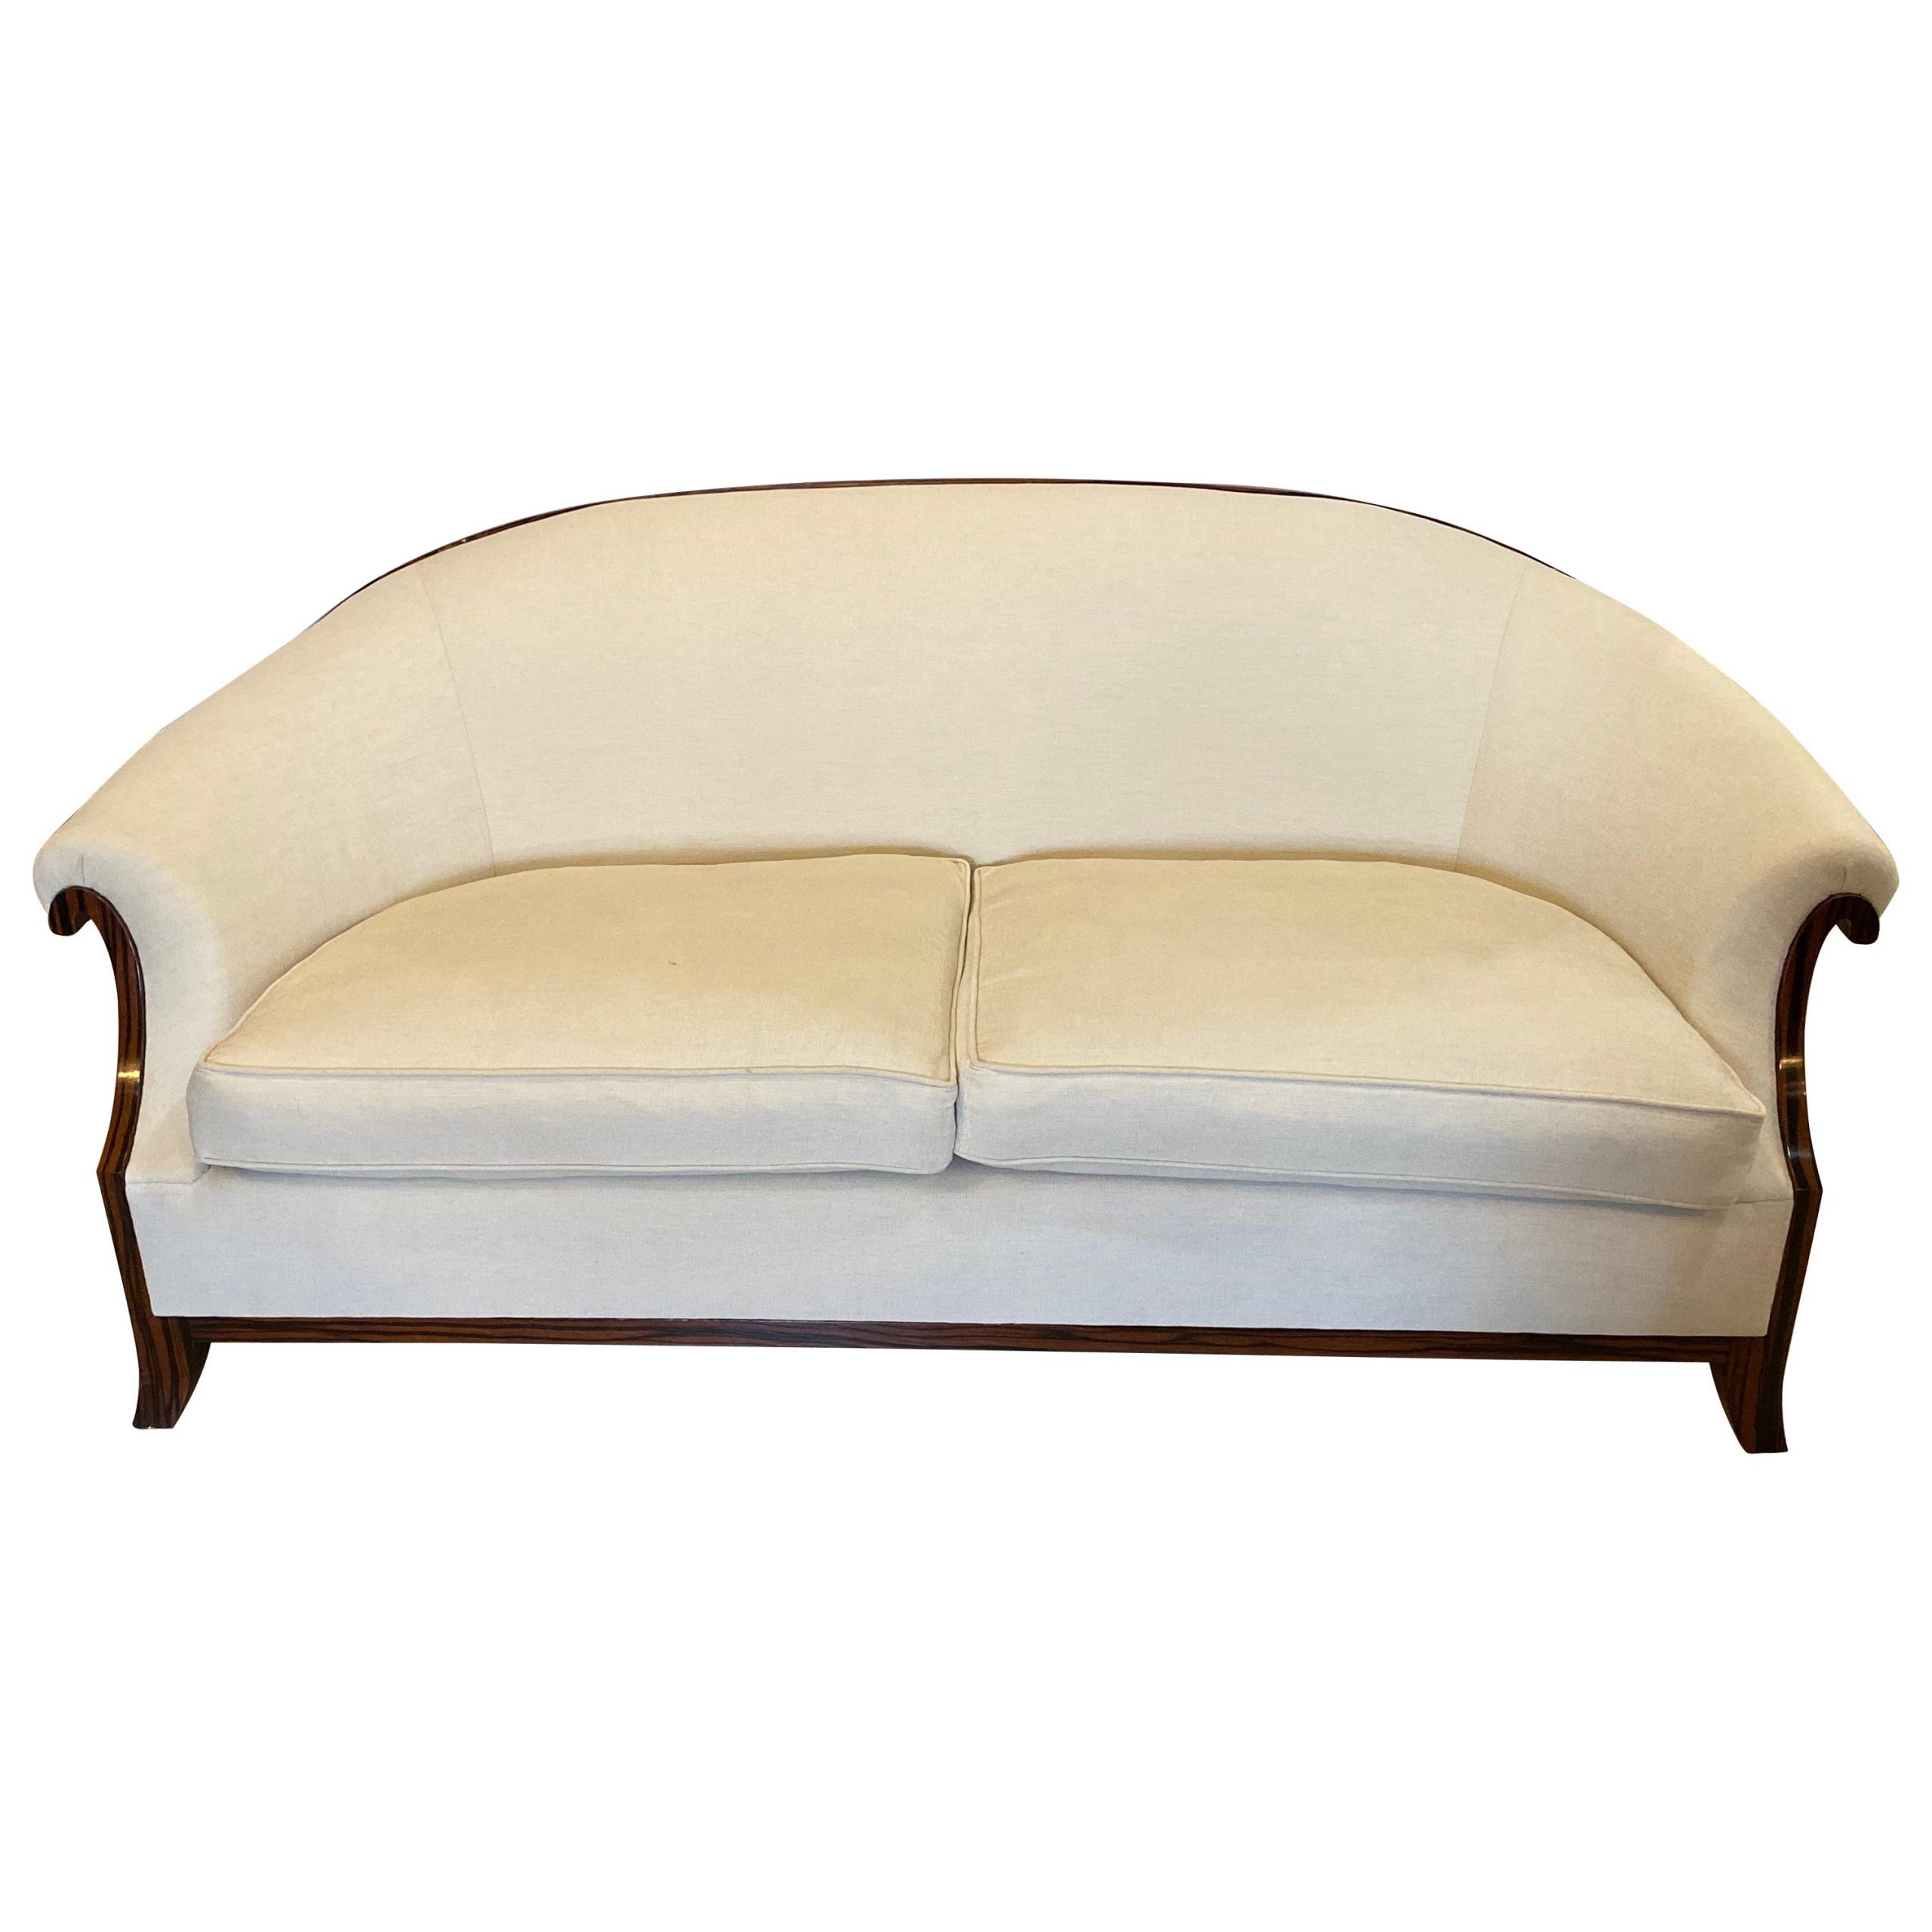 Most Recent Van Dyke Loveseats Regarding Antique And Vintage Loveseats – 1,375 For Sale At 1stdibs (Gallery 11 of 25)